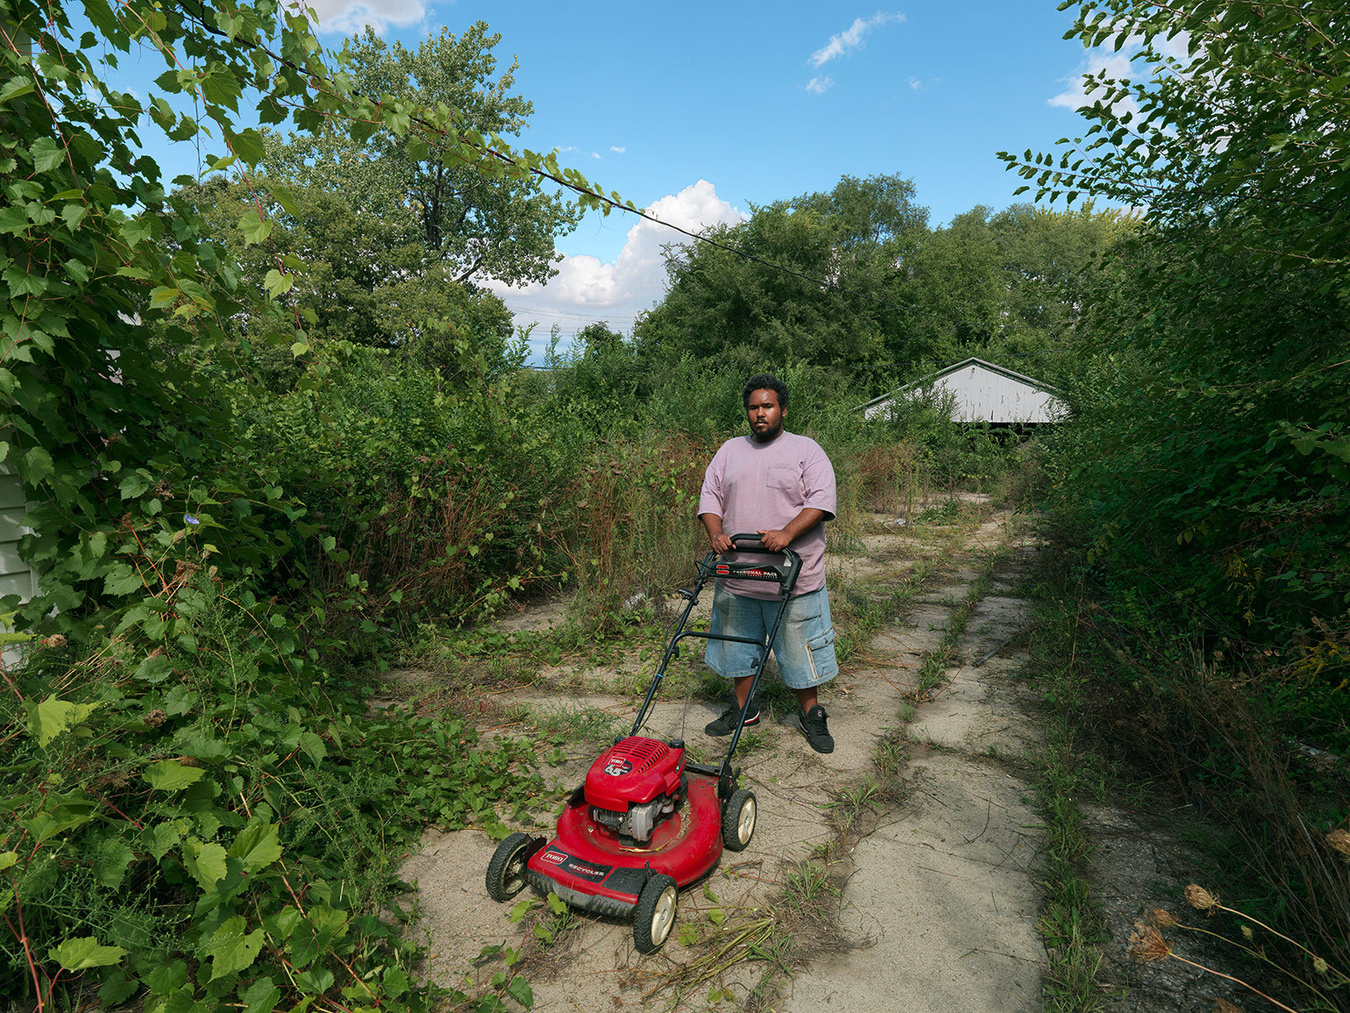 Leonard Mowing Overgrowth in Abandoned Lot, Delray, Detroit 2012